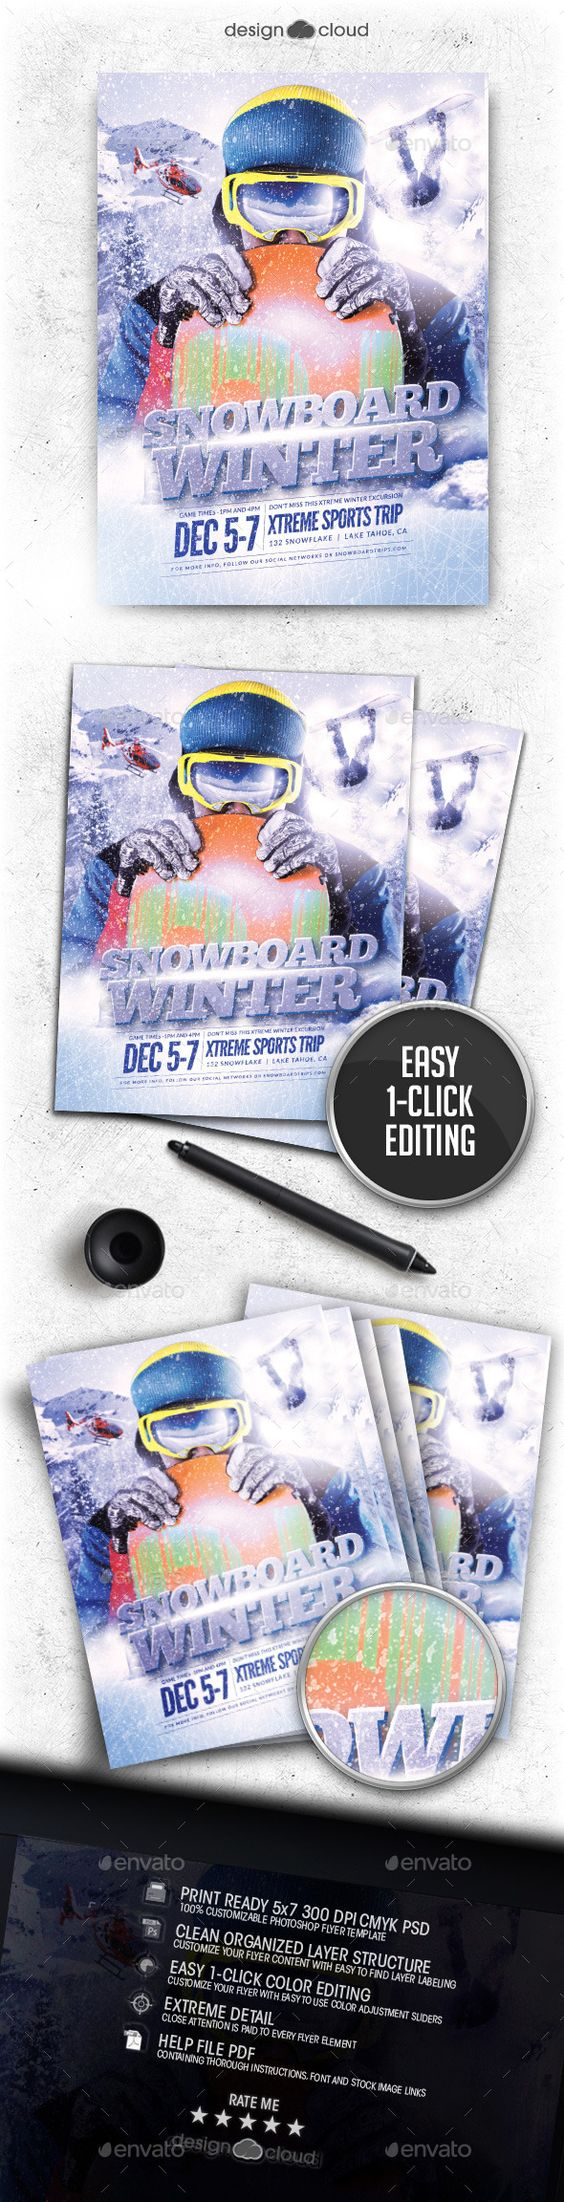 snowboard winter flyer template flyers flyer template and templates snowboard winter flyer template psd design graphicriver net